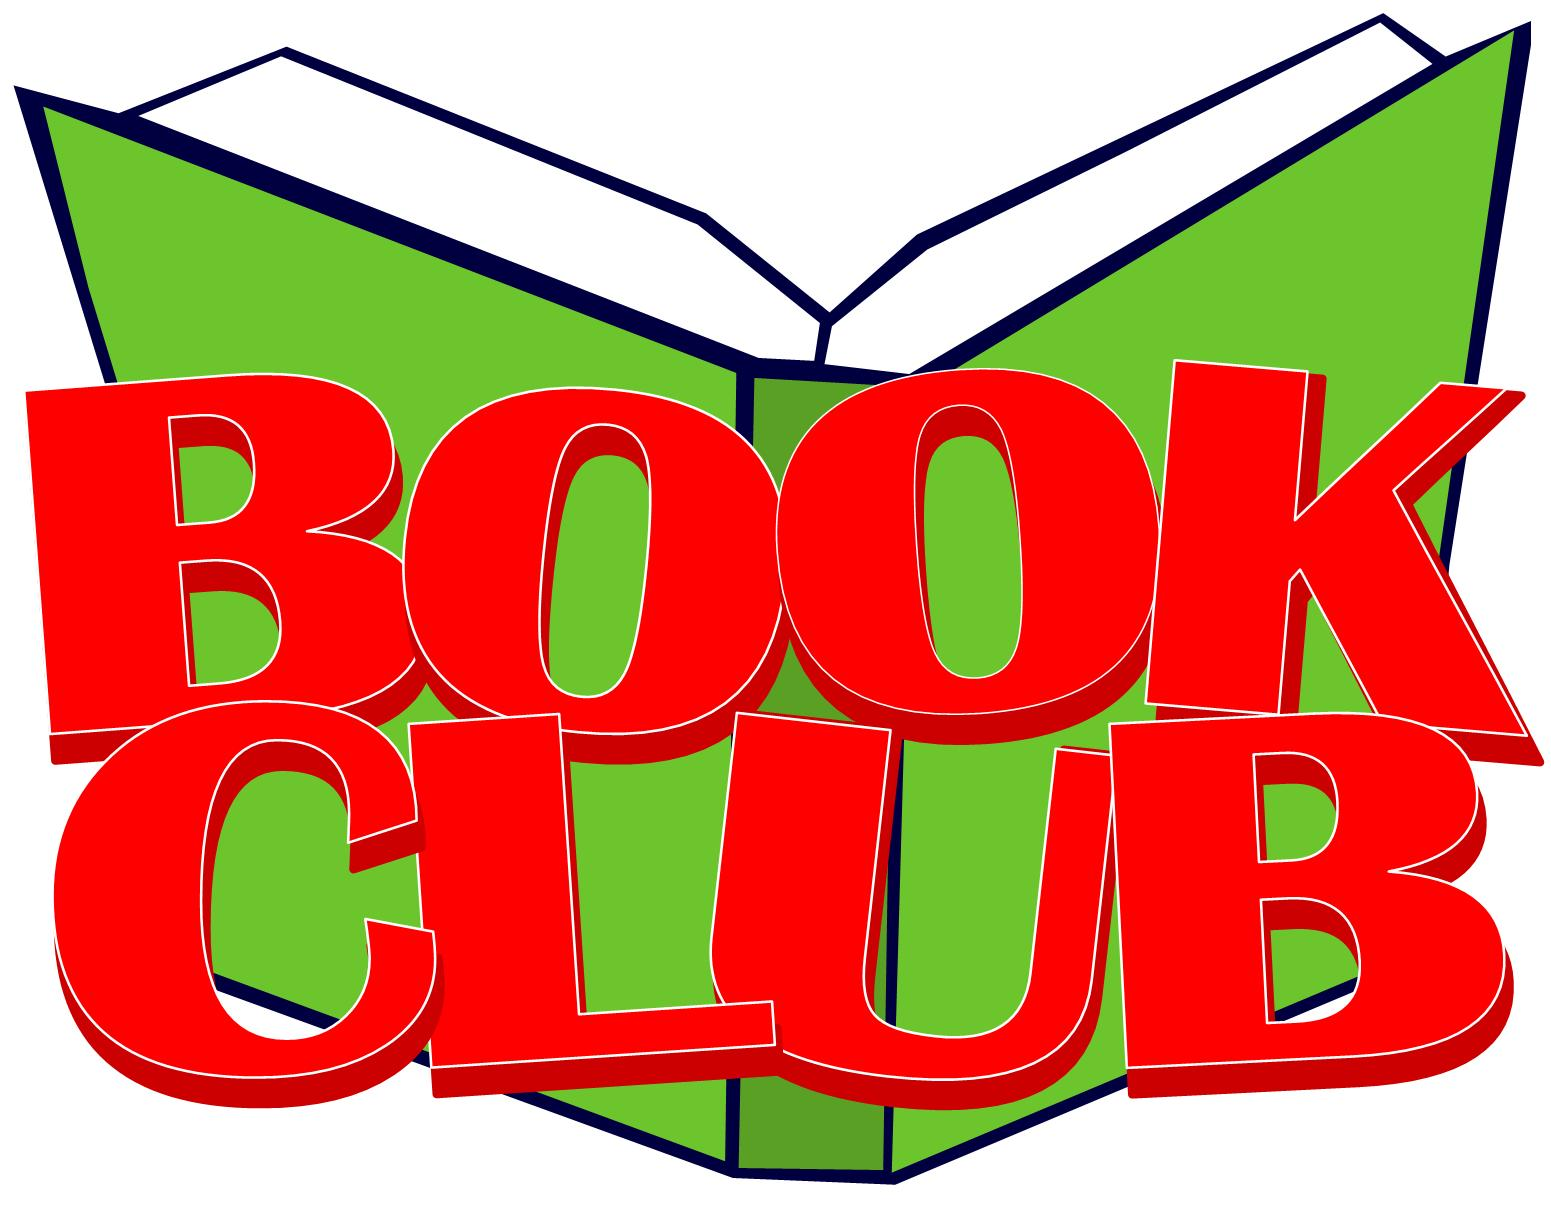 Free club cliparts download. Storytime clipart book discussion